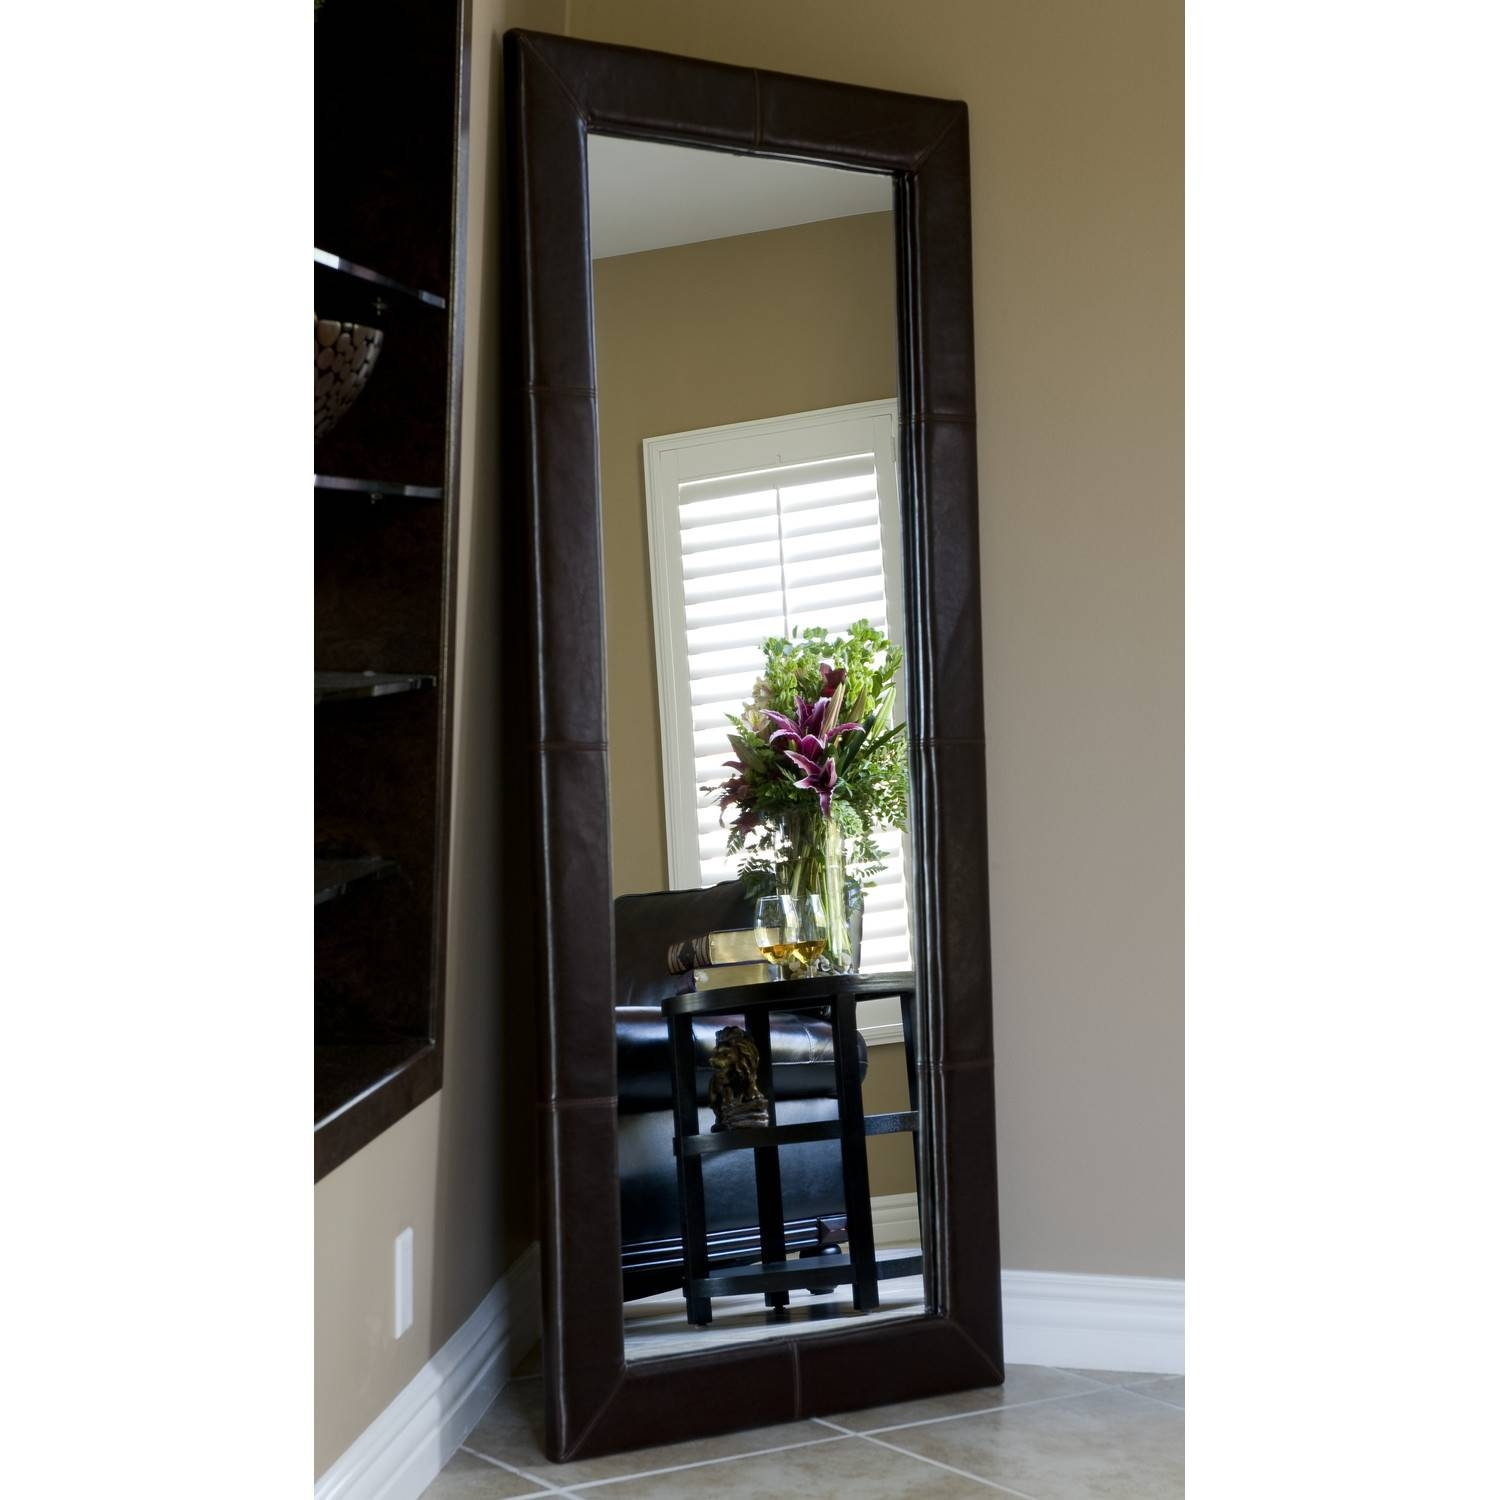 Furniture: Mesmerizing Oversized Floor Mirror For Home Furniture With Regard To Leather Wall Mirrors (View 17 of 25)